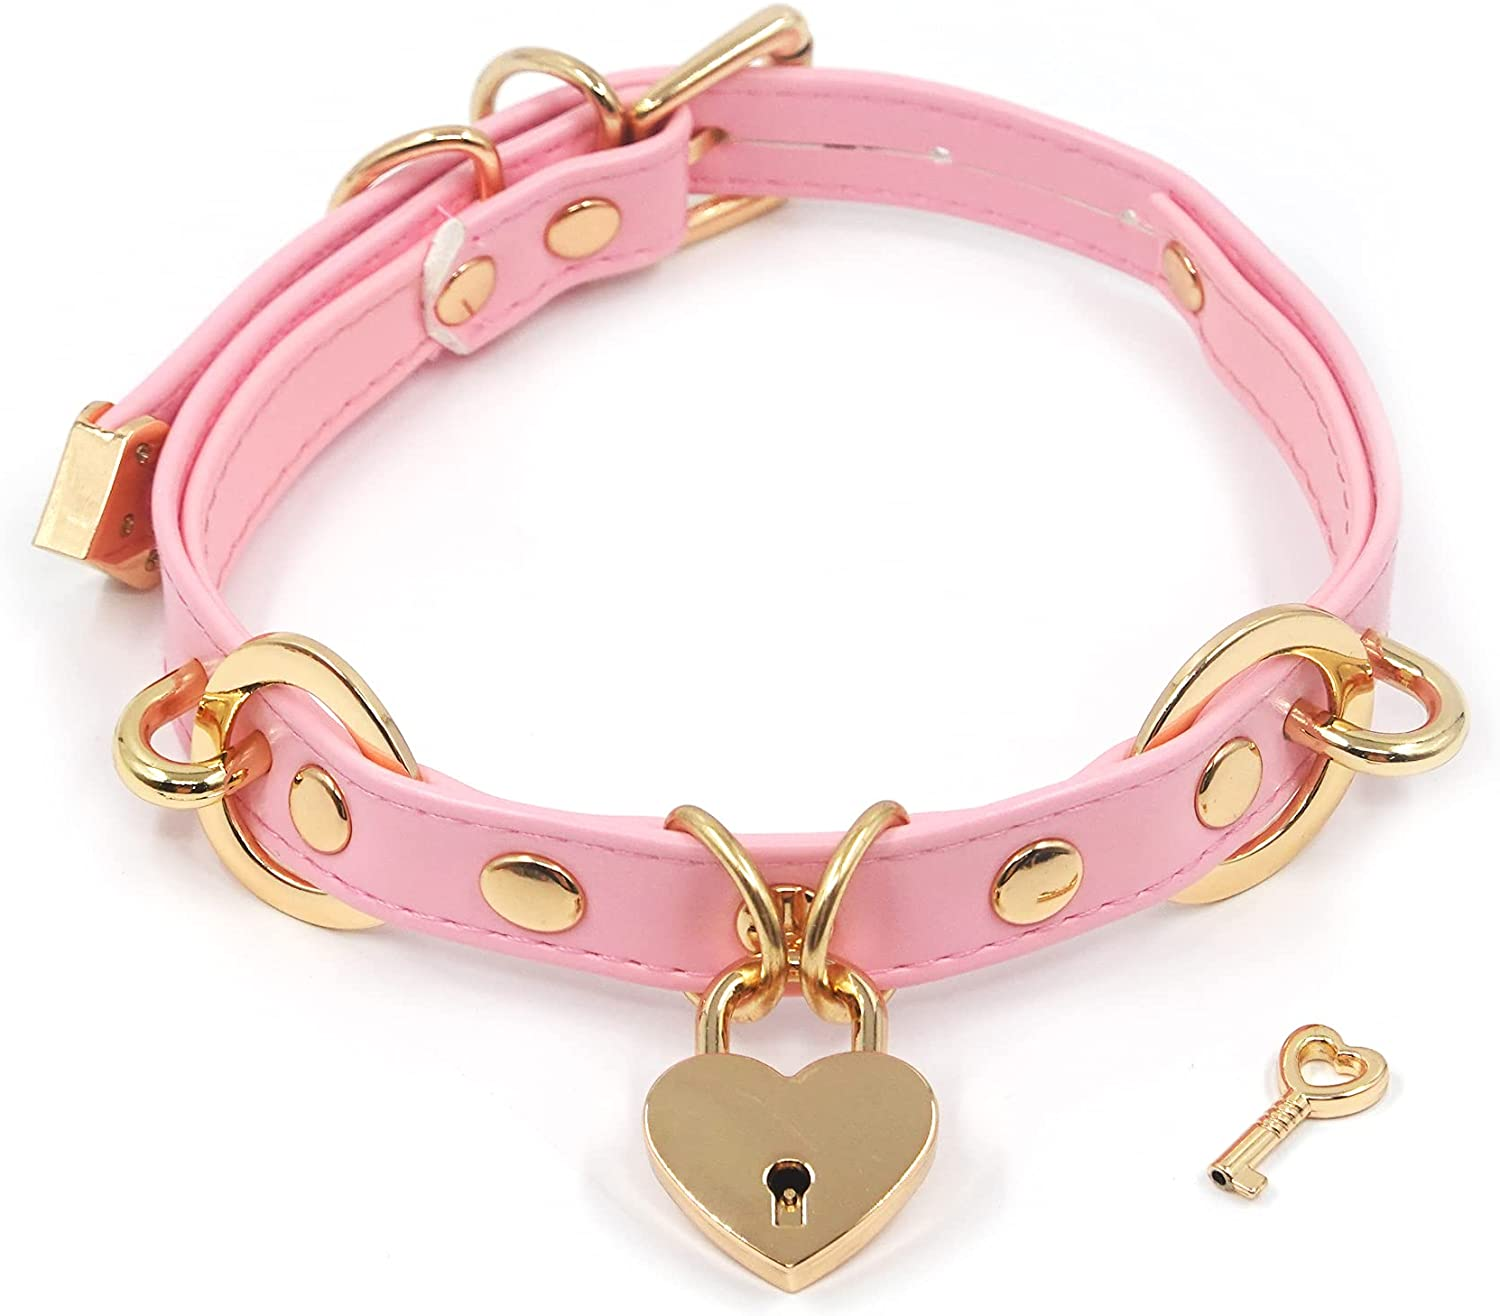 Handmade Heart Padlock Leather Adjustable Collar With Key Goth Choker Necklace For Women Girls